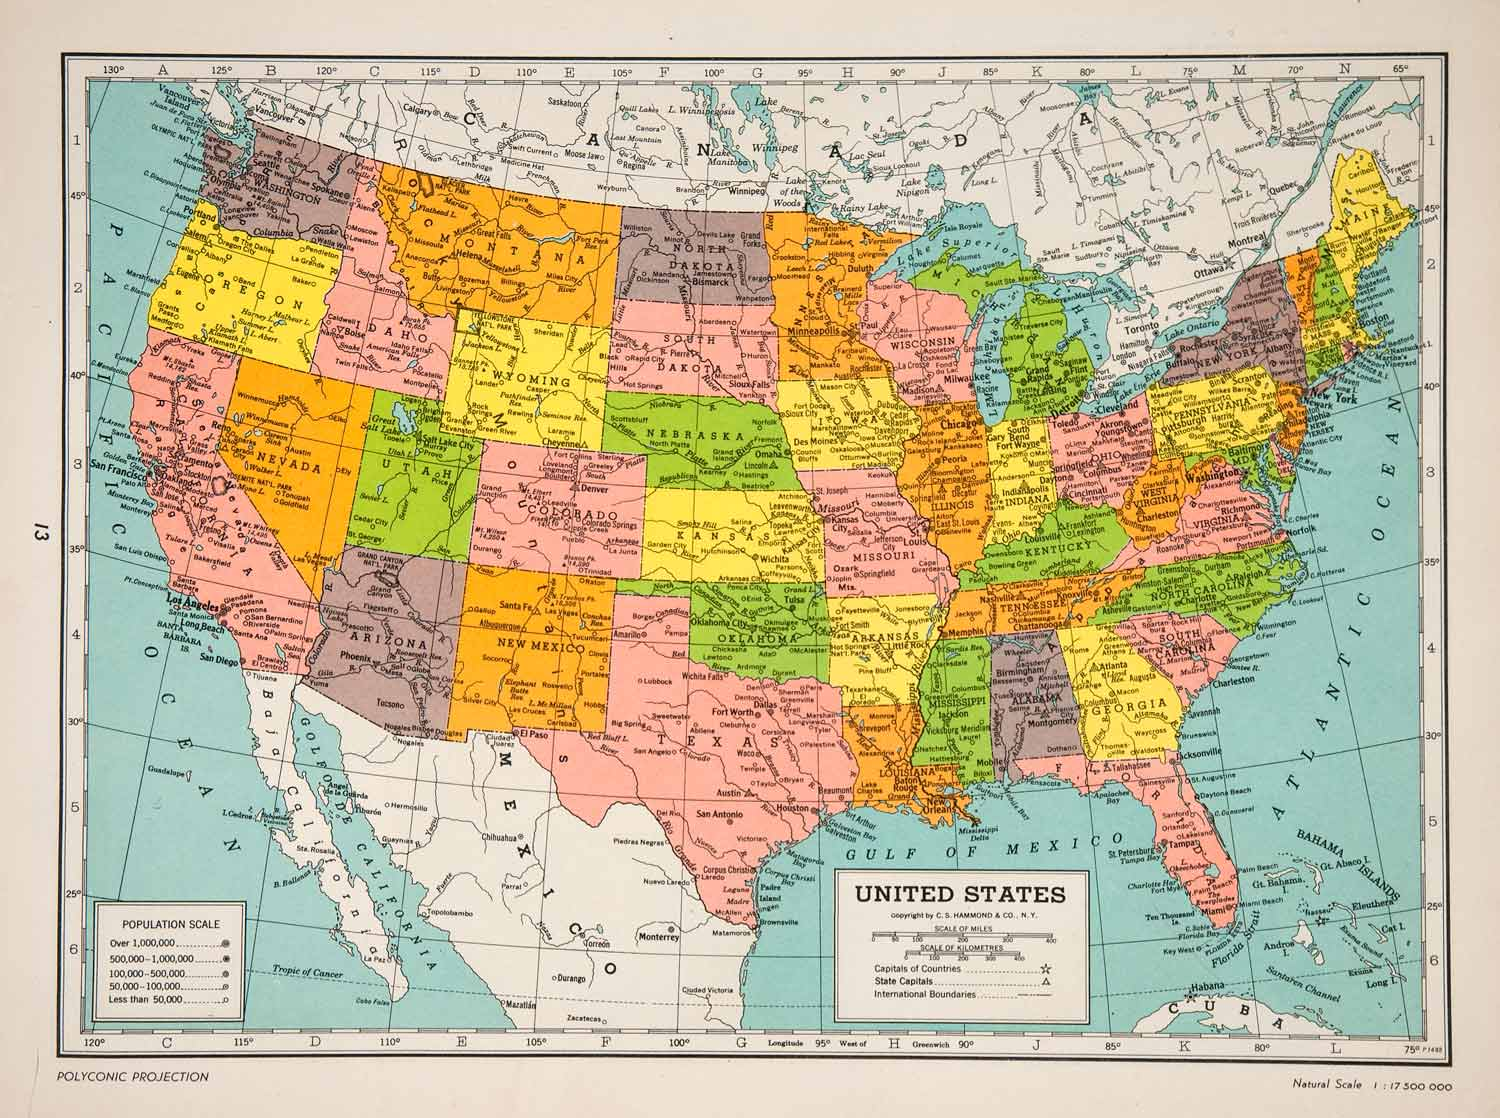 1947 Lithograph Map United States America Polyconic Projection Atlantic  XGIC7